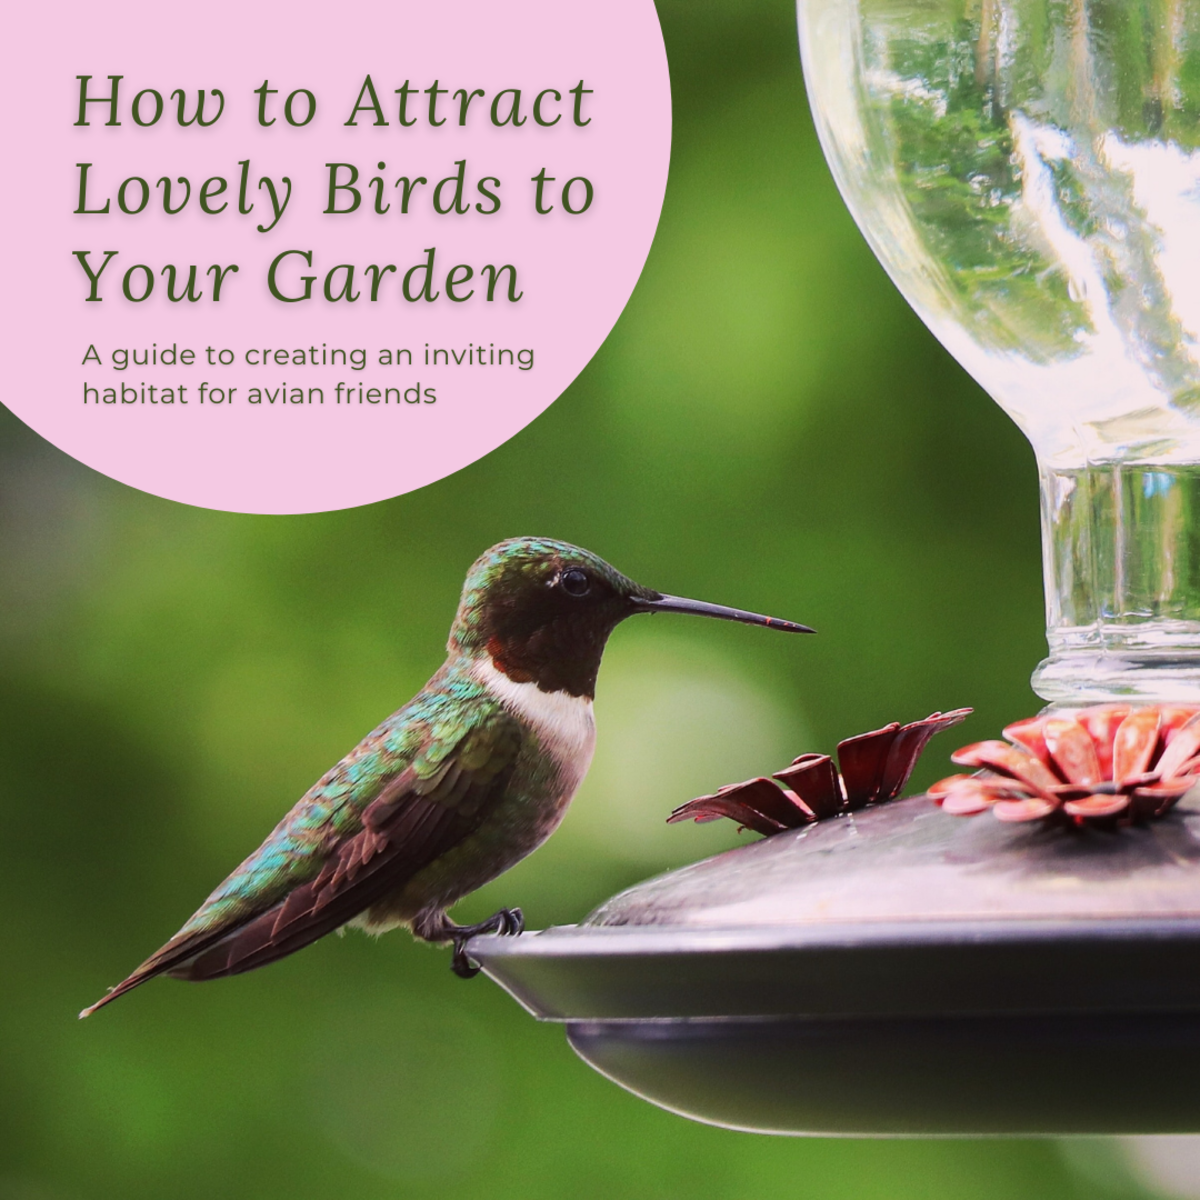 Bird Feeders and an Inviting Habitat Bring Avian Friends to the Garden